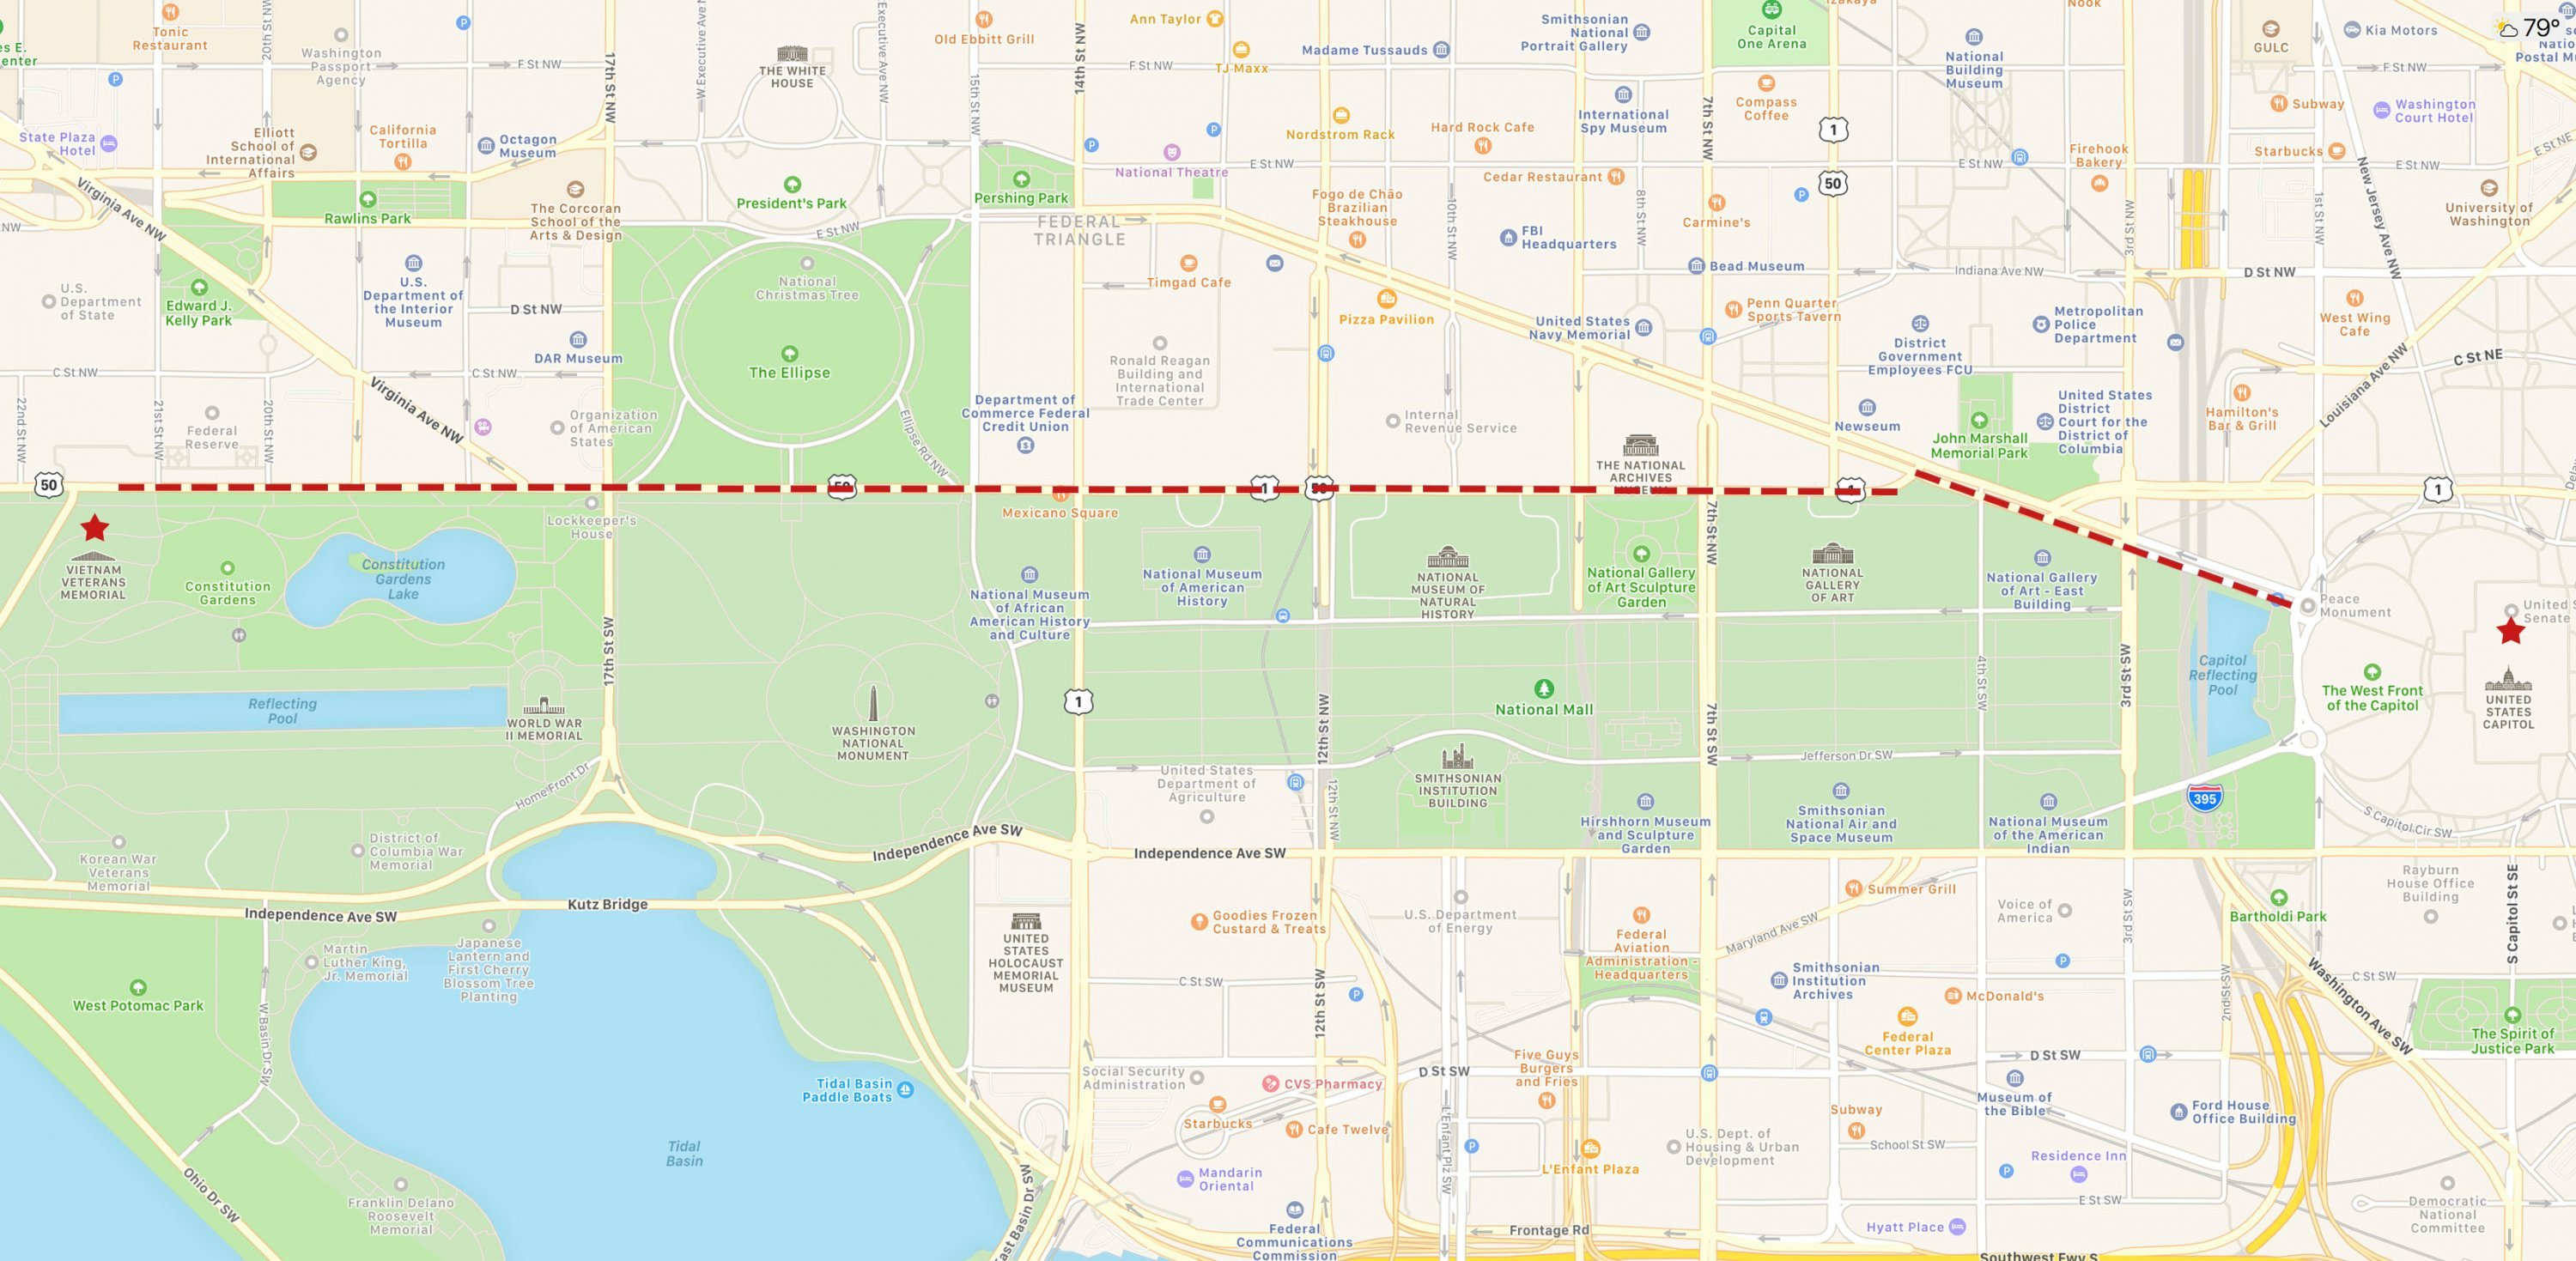 McCain DC procession route